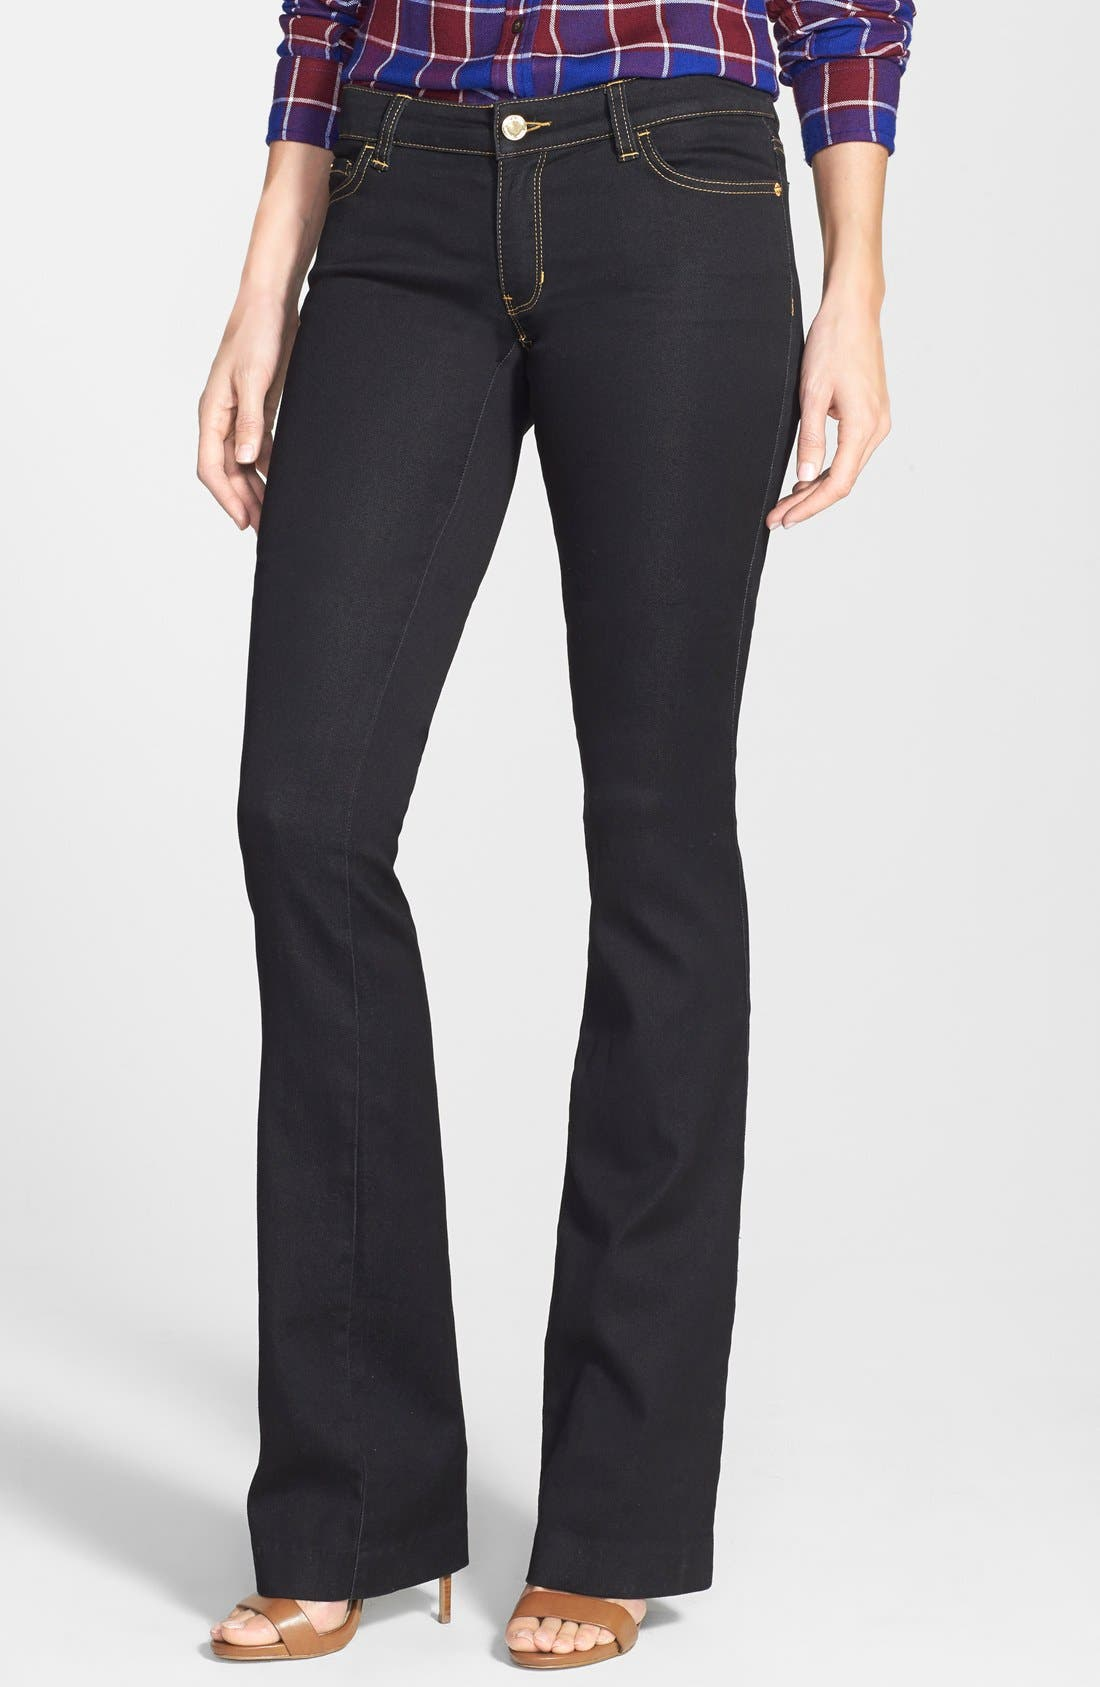 Alternate Image 1 Selected - MICHAEL Michael Kors Stretch Straight Leg Jeans